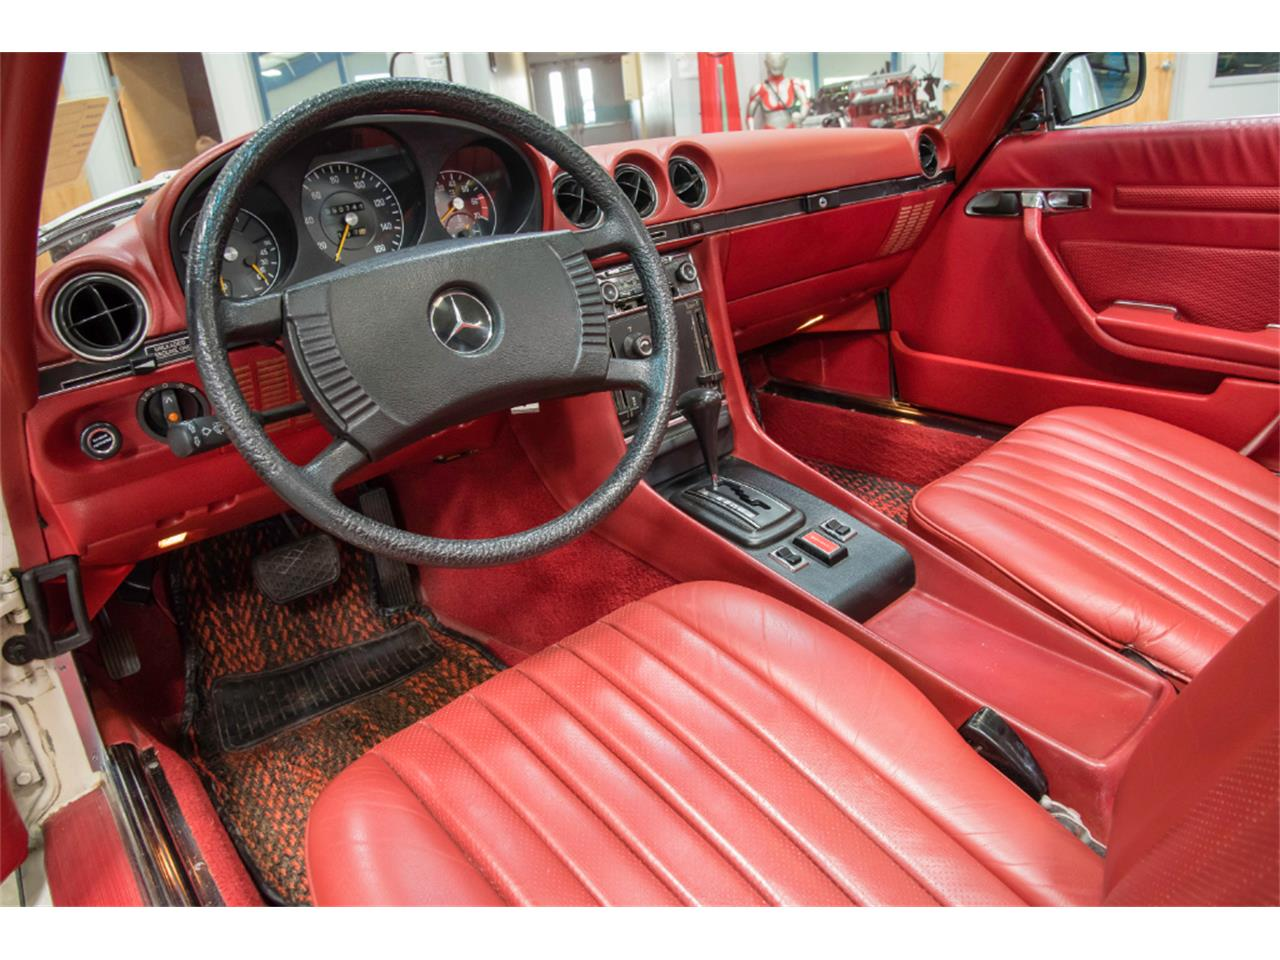 Large Picture of '76 Mercedes-Benz 450SL located in Salem Ohio Offered by John Kufleitner's Galleria - LKM8